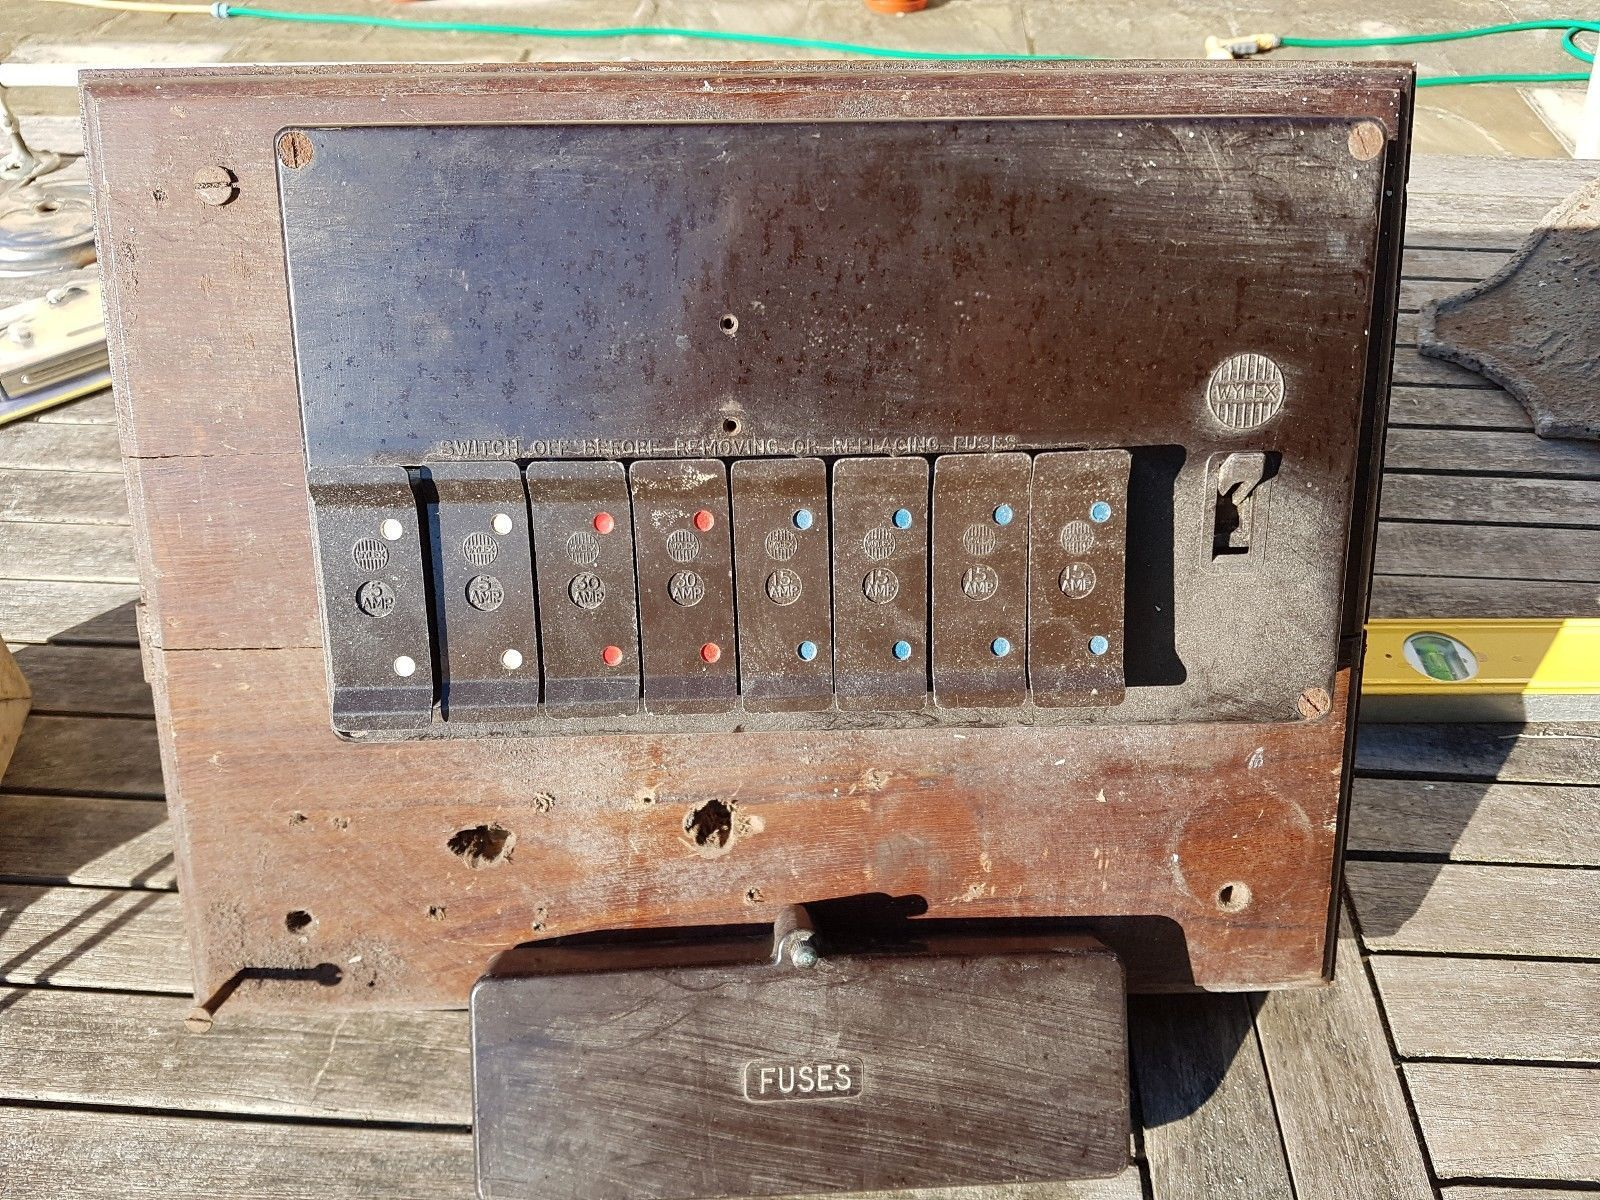 wylex bakelite fuse box old fuse box with ceramic breakers bakelite switch  [ 1600 x 1200 Pixel ]